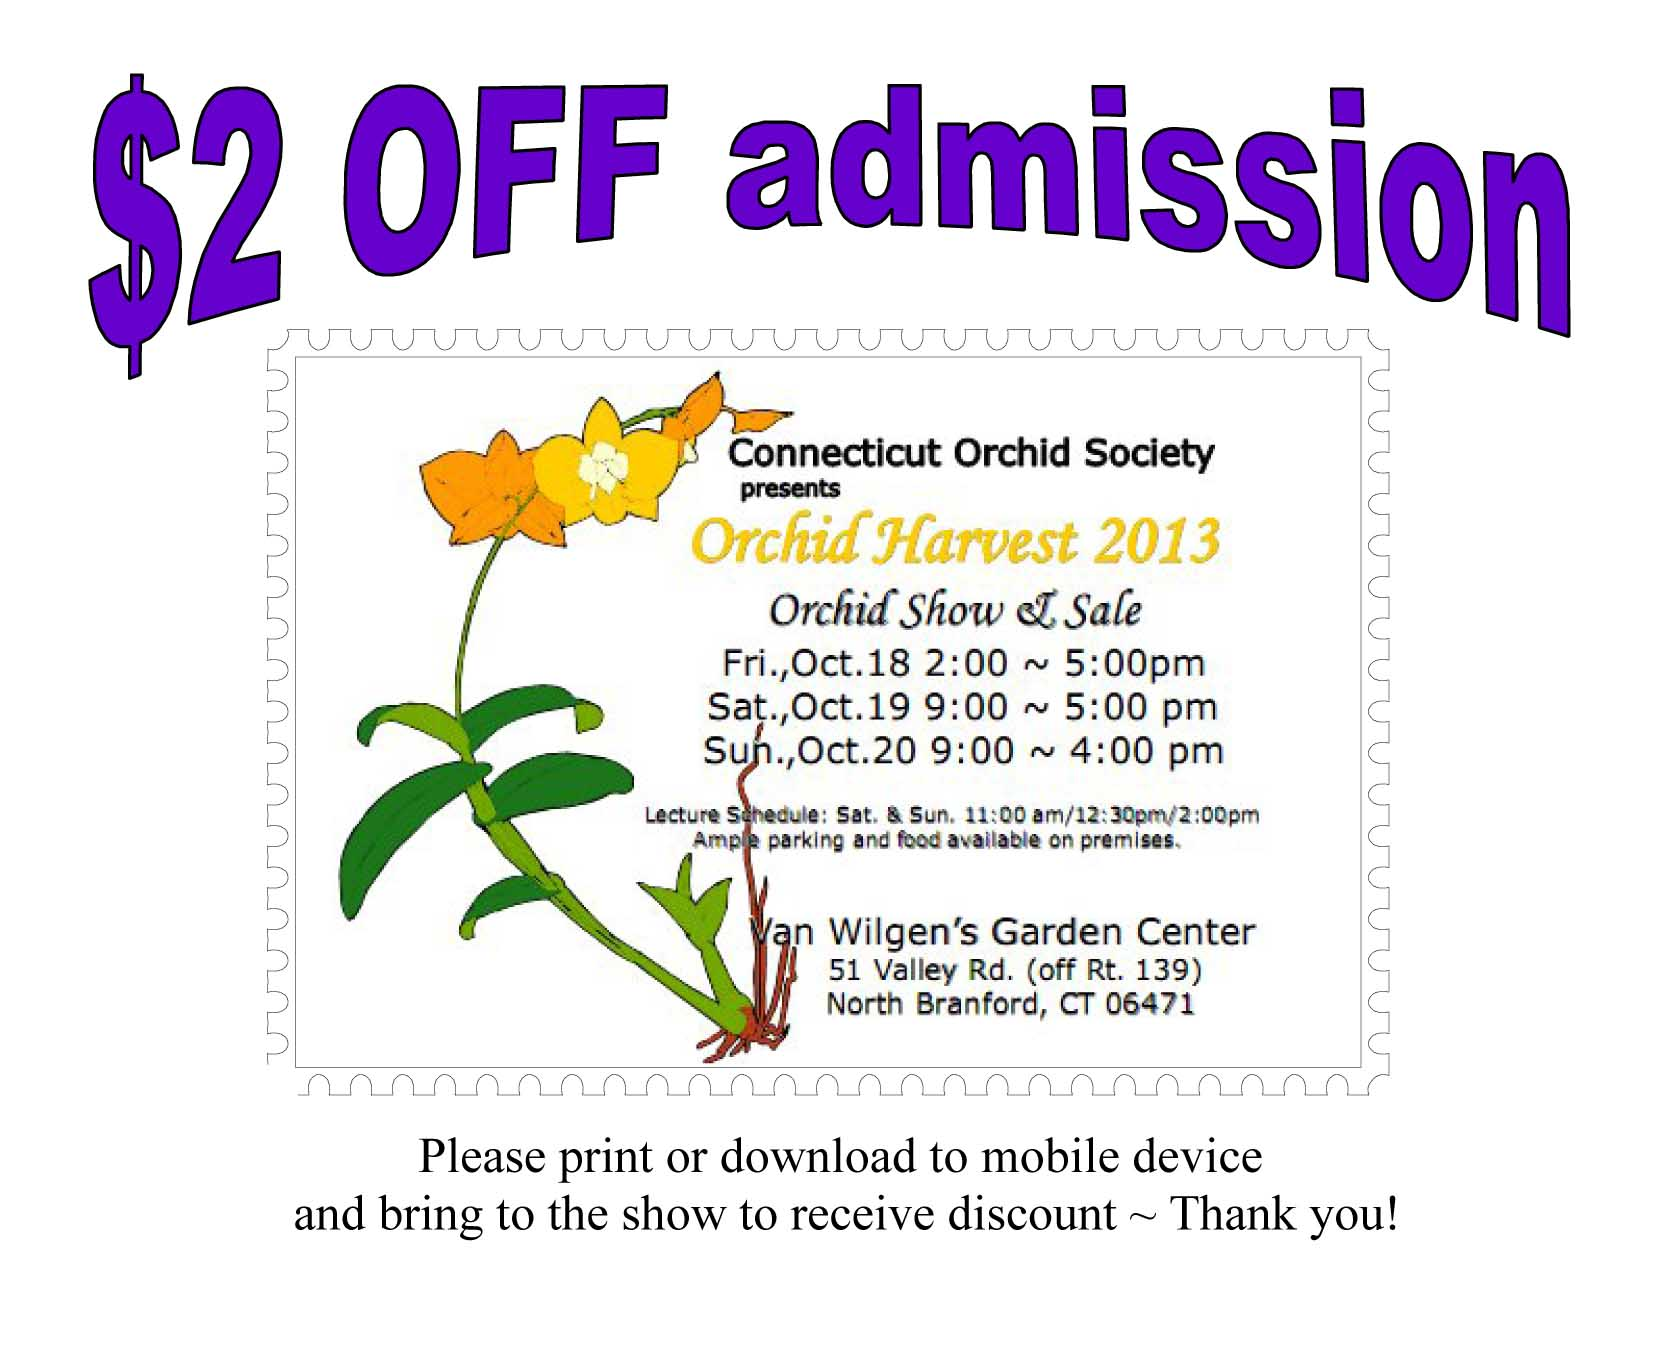 Riverbanks zoo coupon code 2018